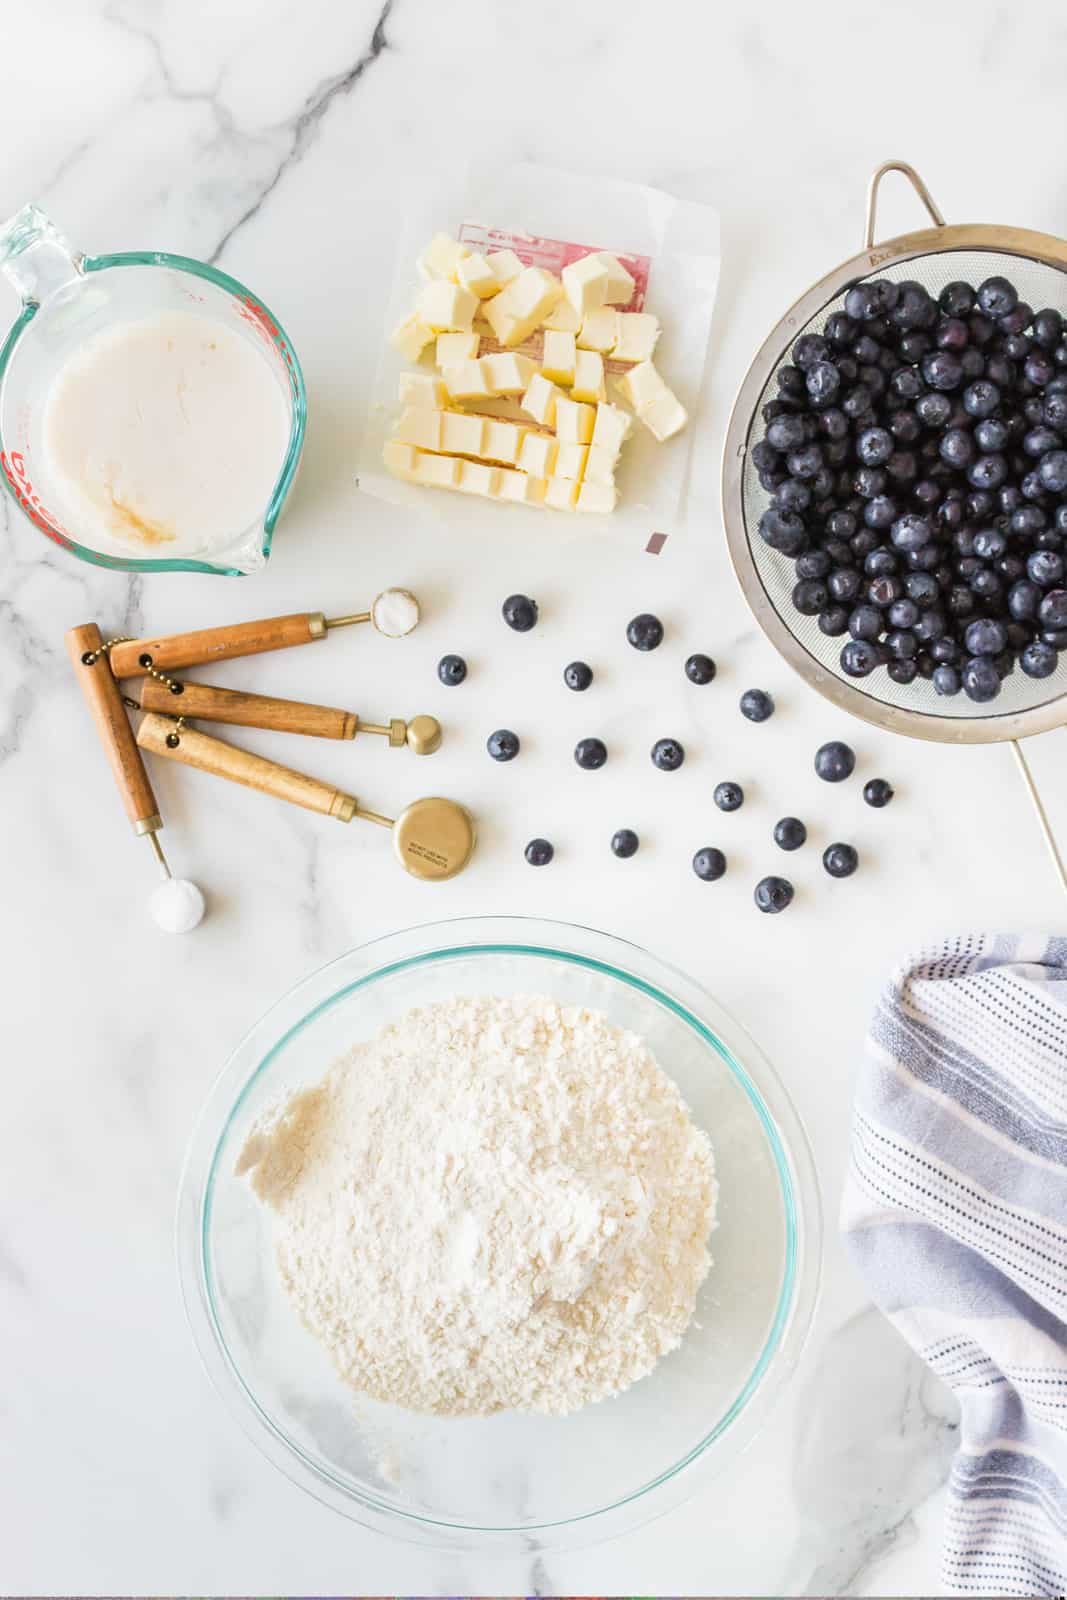 Ingredients needed to make Blueberry Biscuits